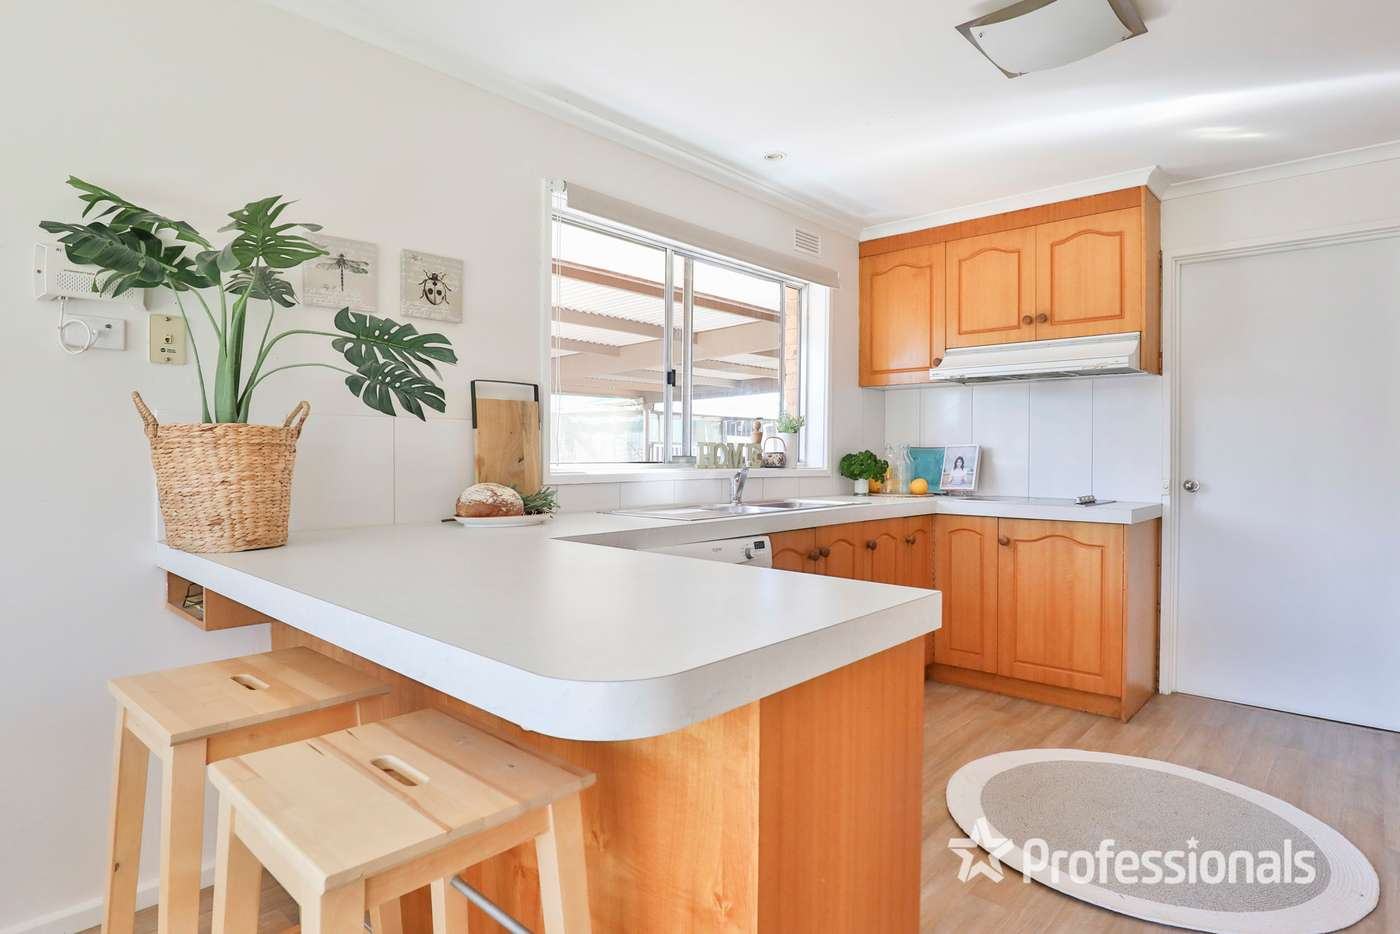 Fifth view of Homely house listing, 6 Myrtle Court, Irymple VIC 3498